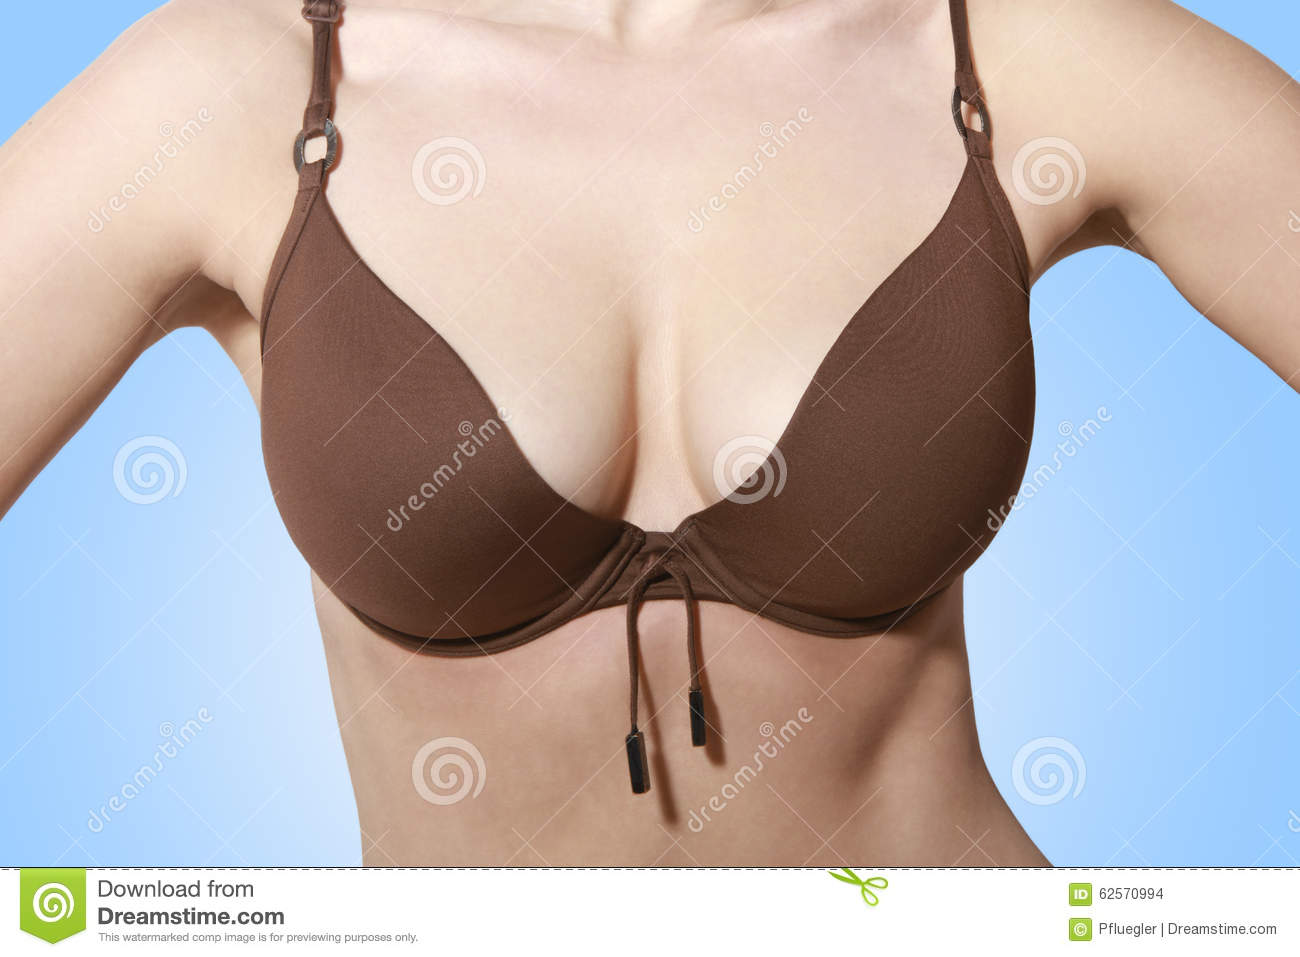 Photos of beautiful breasts